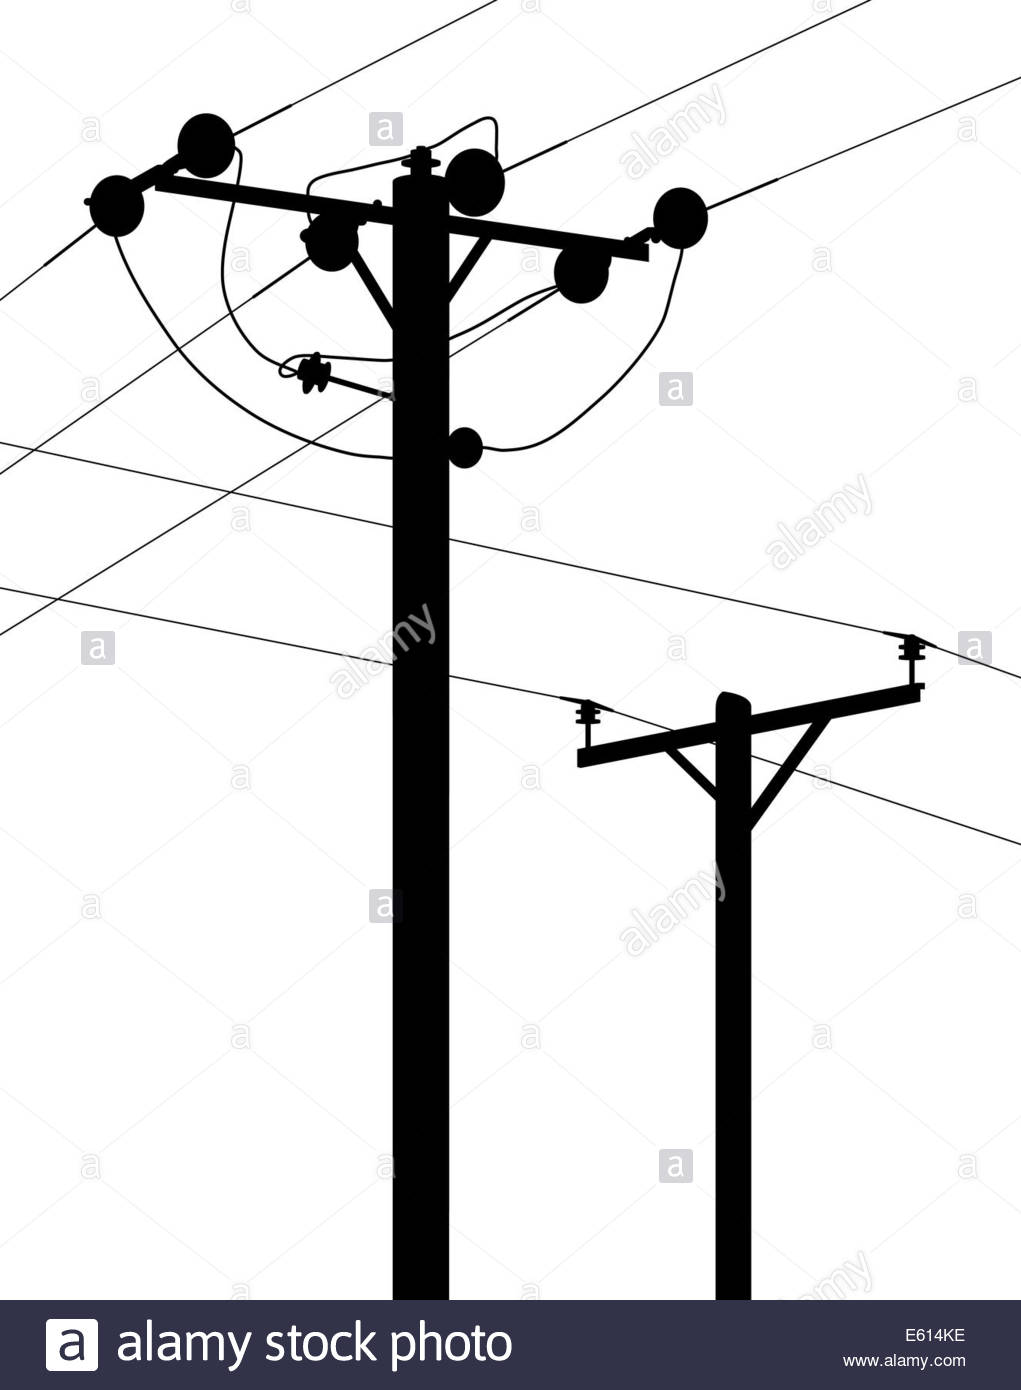 1021x1390 Wooden Telephone Pole Power Lines Stock Photos Amp Wooden Telephone